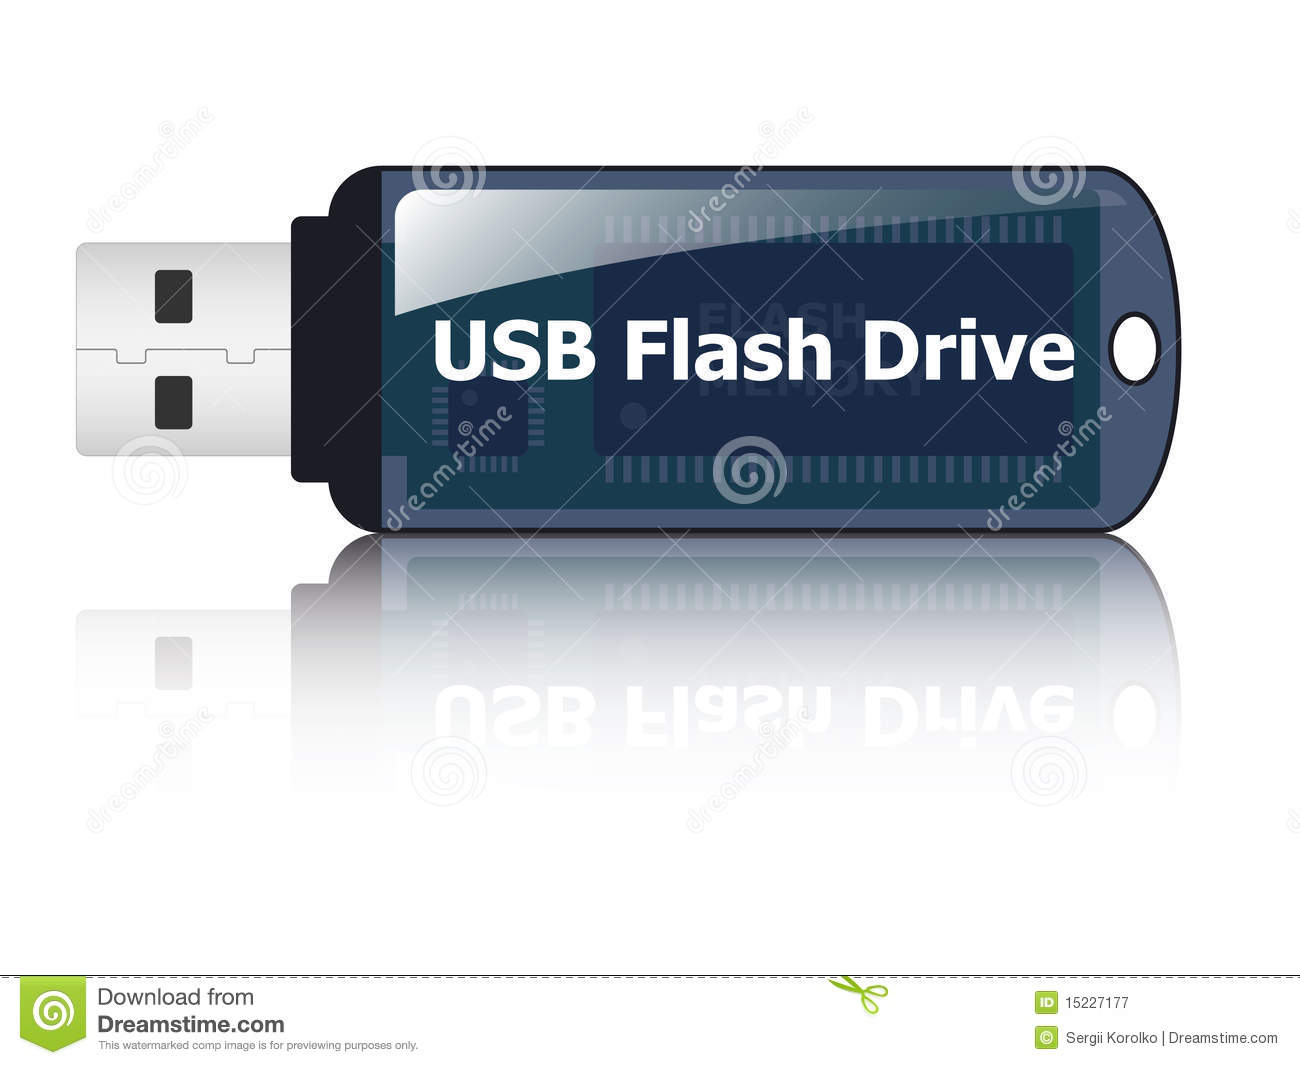 how to set an icon for a flash drive